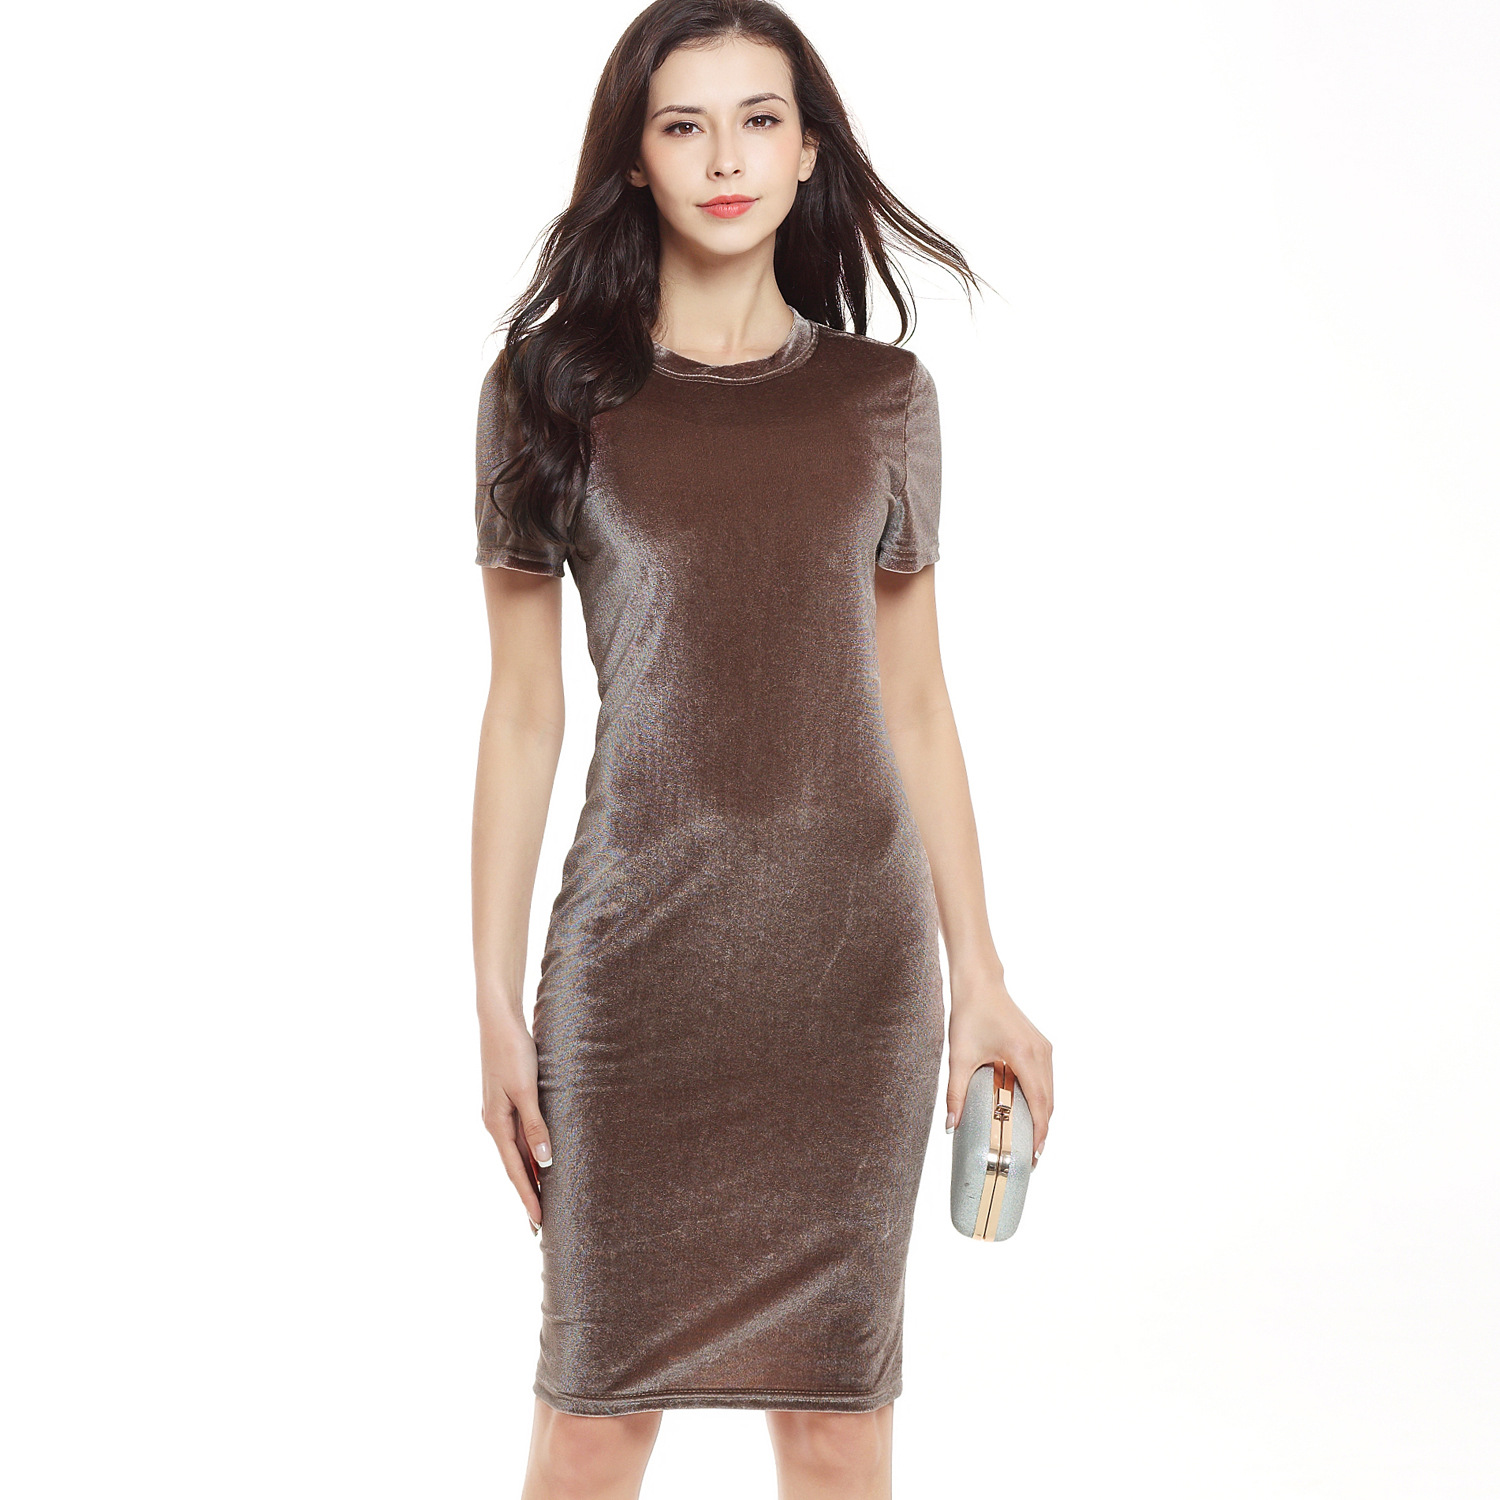 Suvance Velvet Sexy Round-neck Short Sleeves Solid Color Pencil Women's Dress